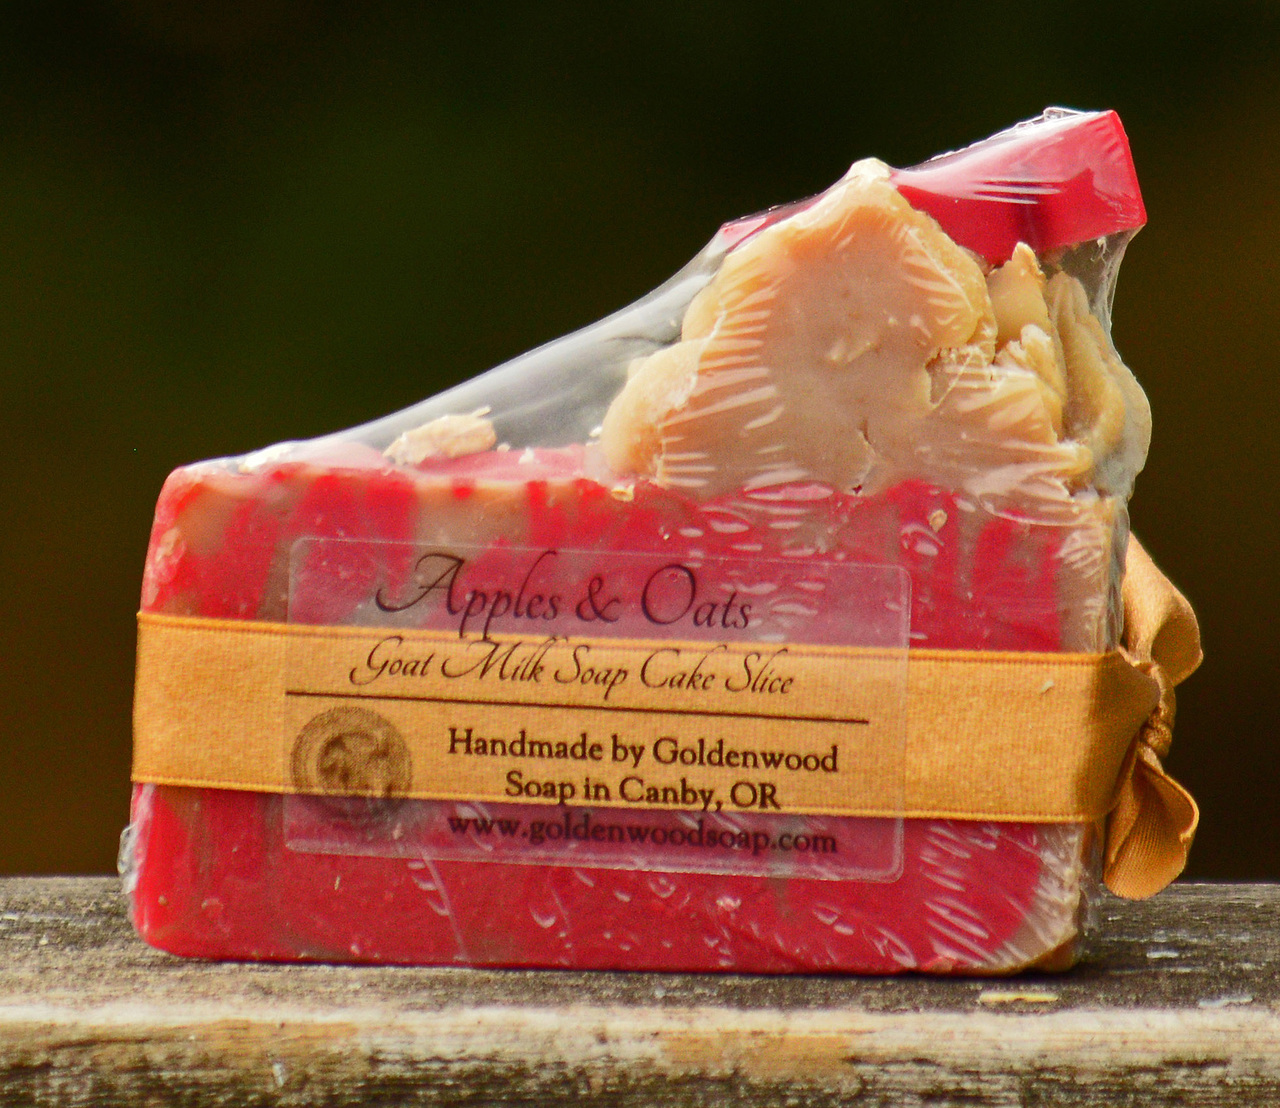 Apples & Oats - Goat Milk Soap Cake Slice - Avg weight 6.3oz per bar